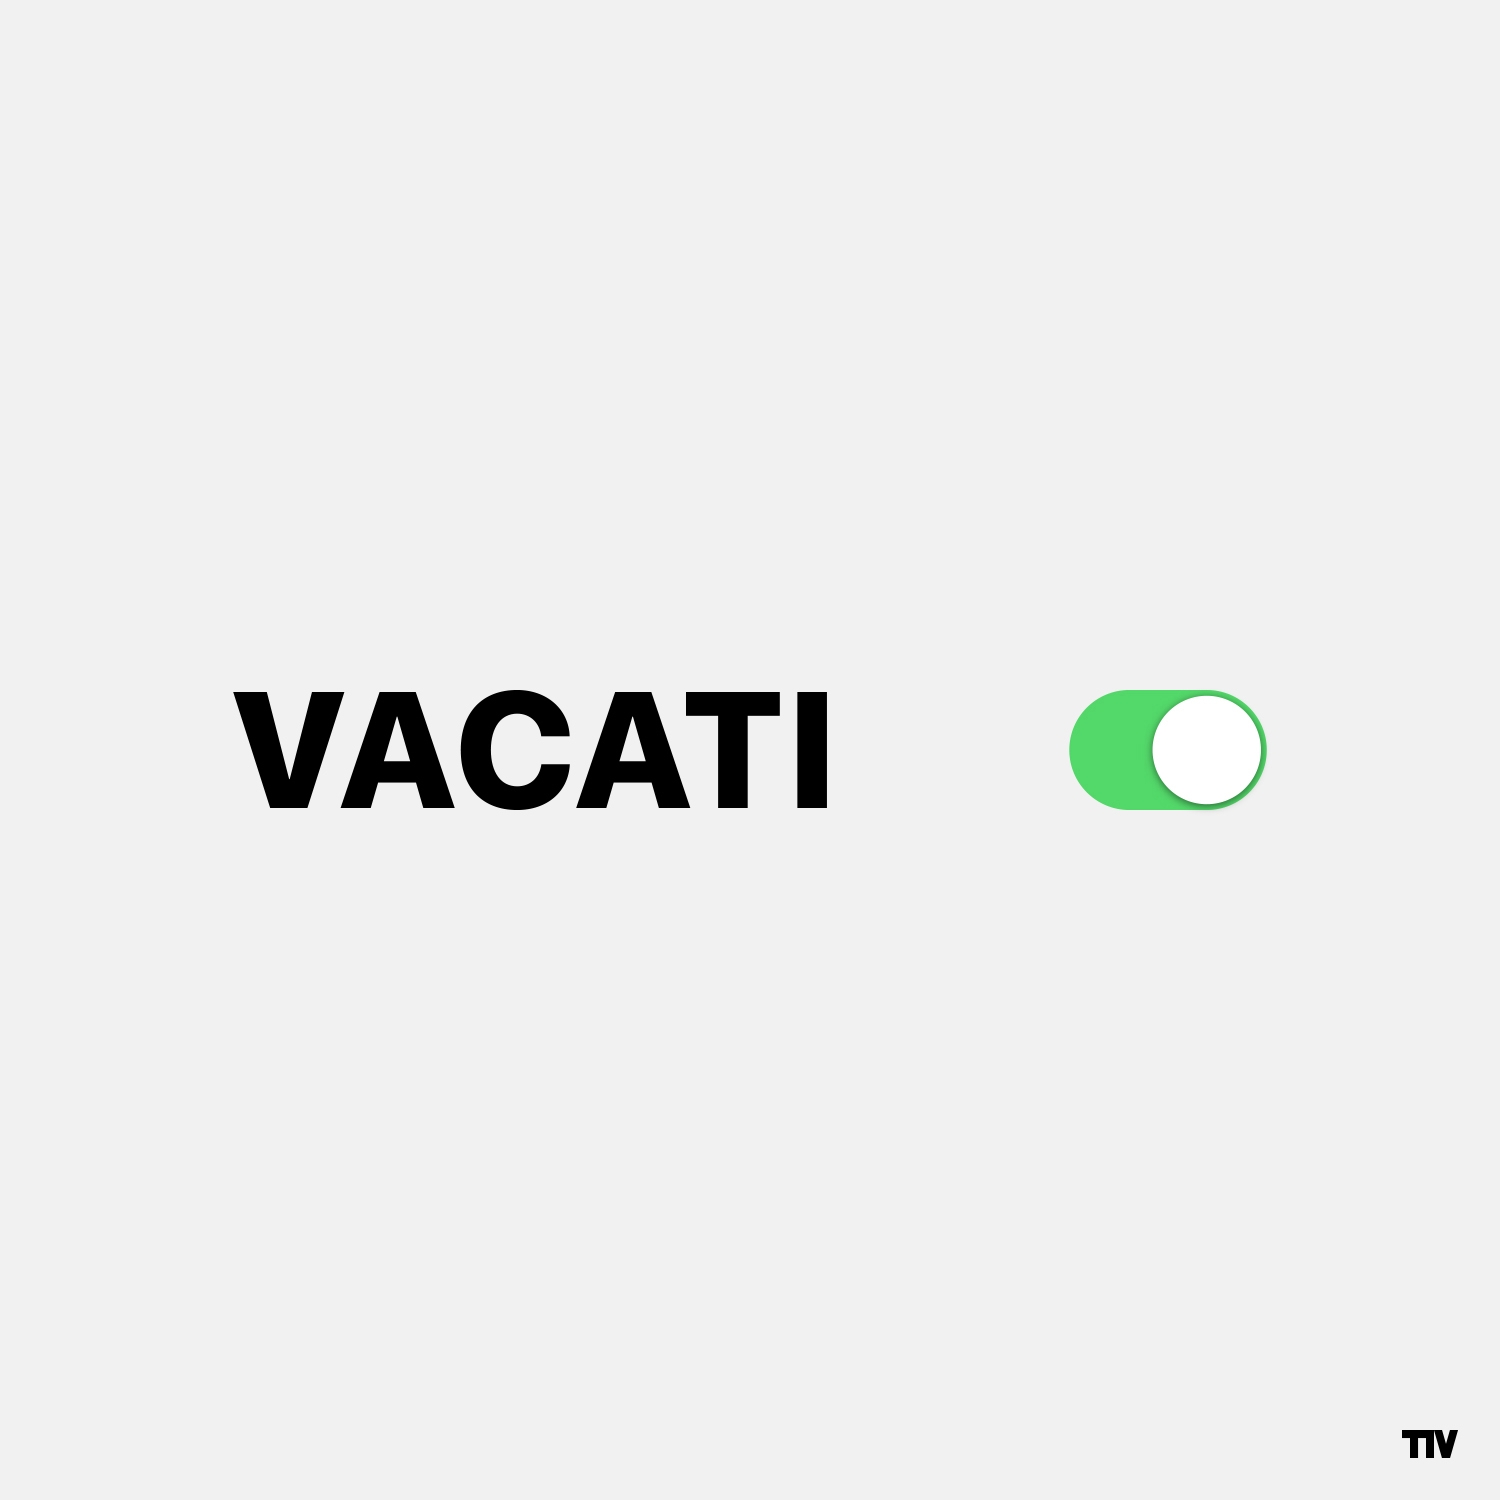 < VACATION > 2017 TIVSOY  - tivsoy | ello